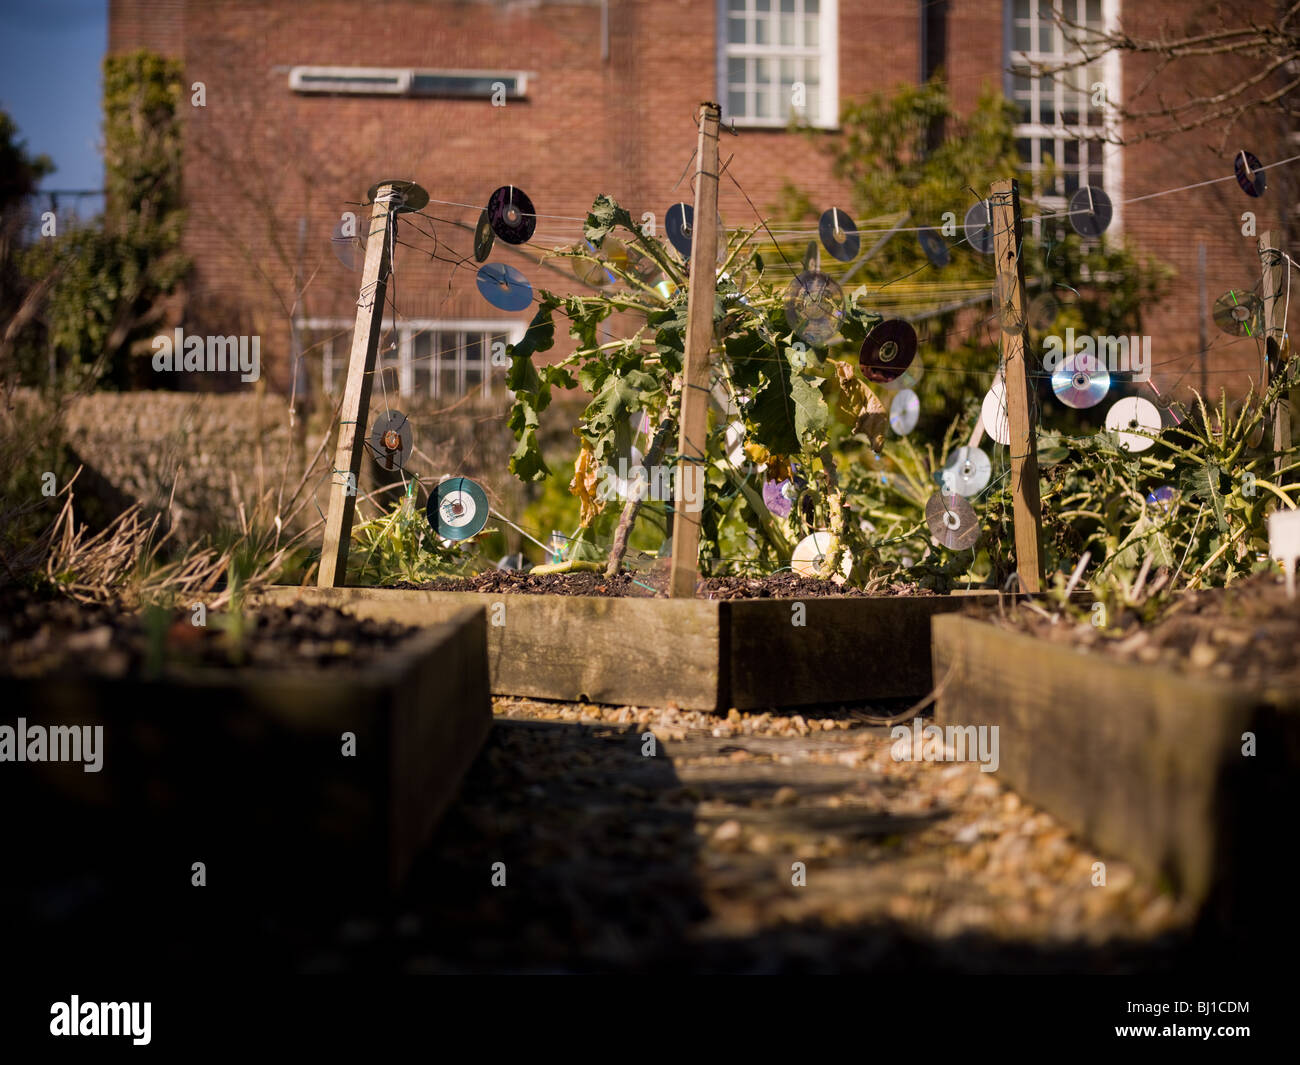 A vegetable patch in a garden using CD s to scare birds. - Stock Image